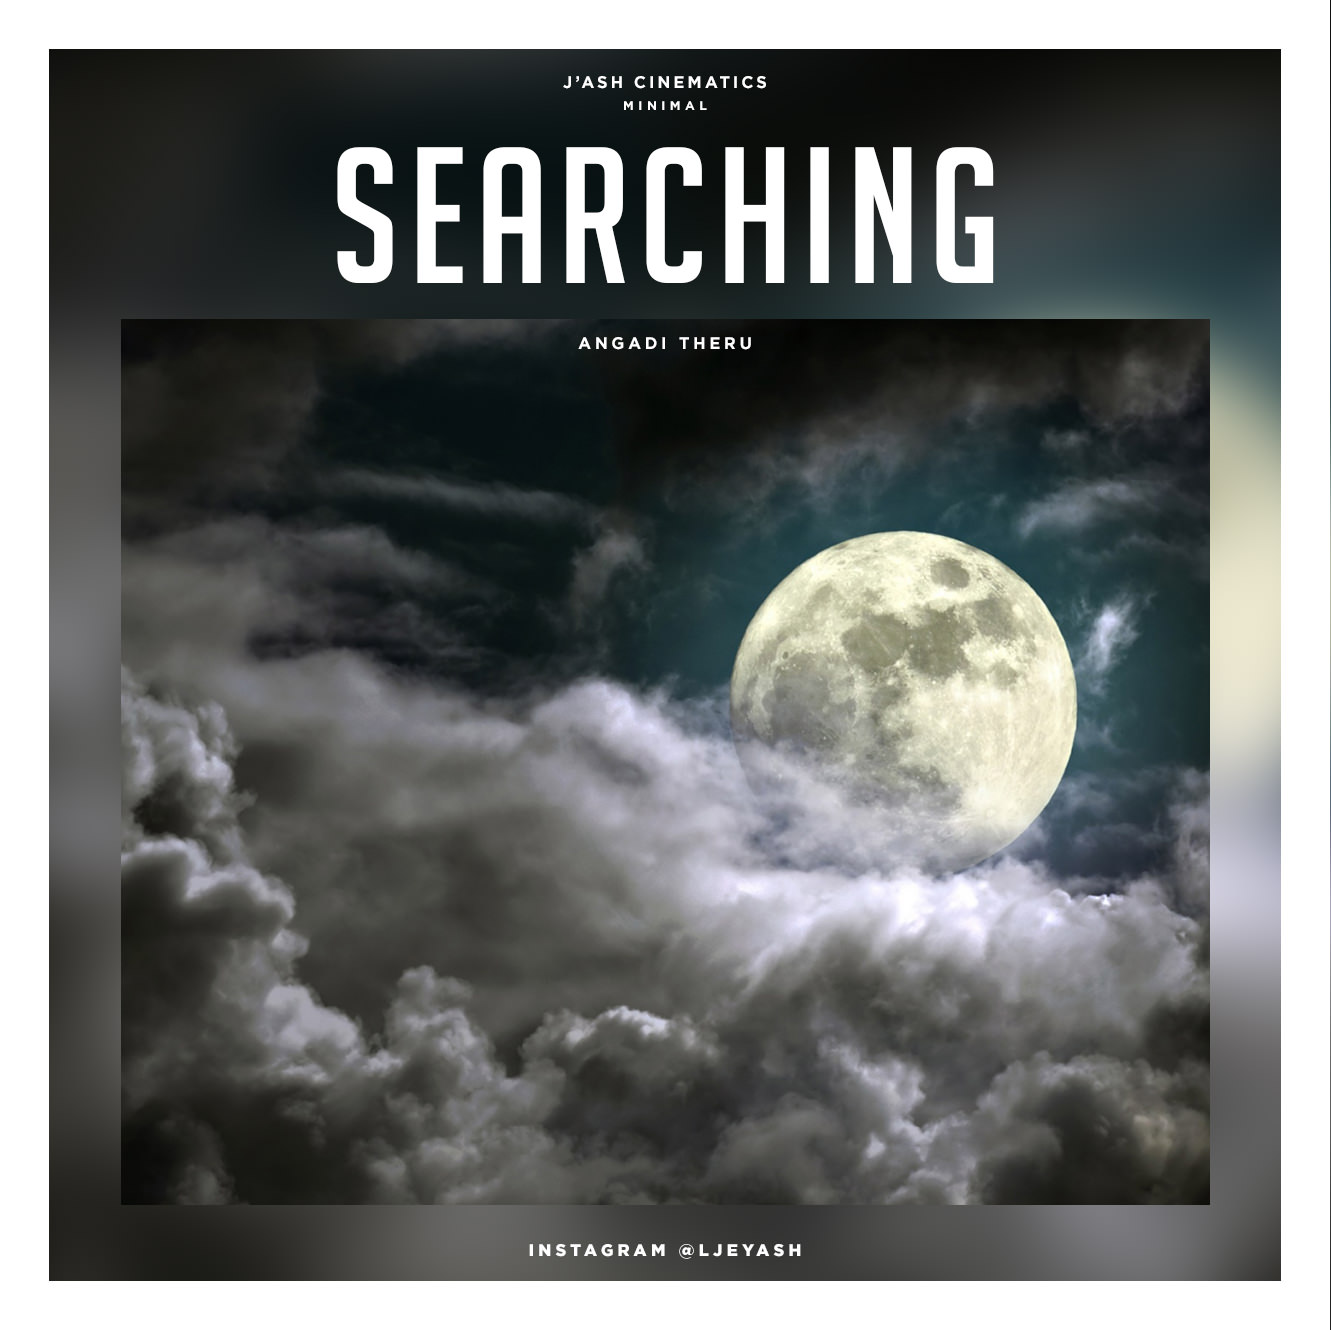 Searching - Angadi Theru.jpg